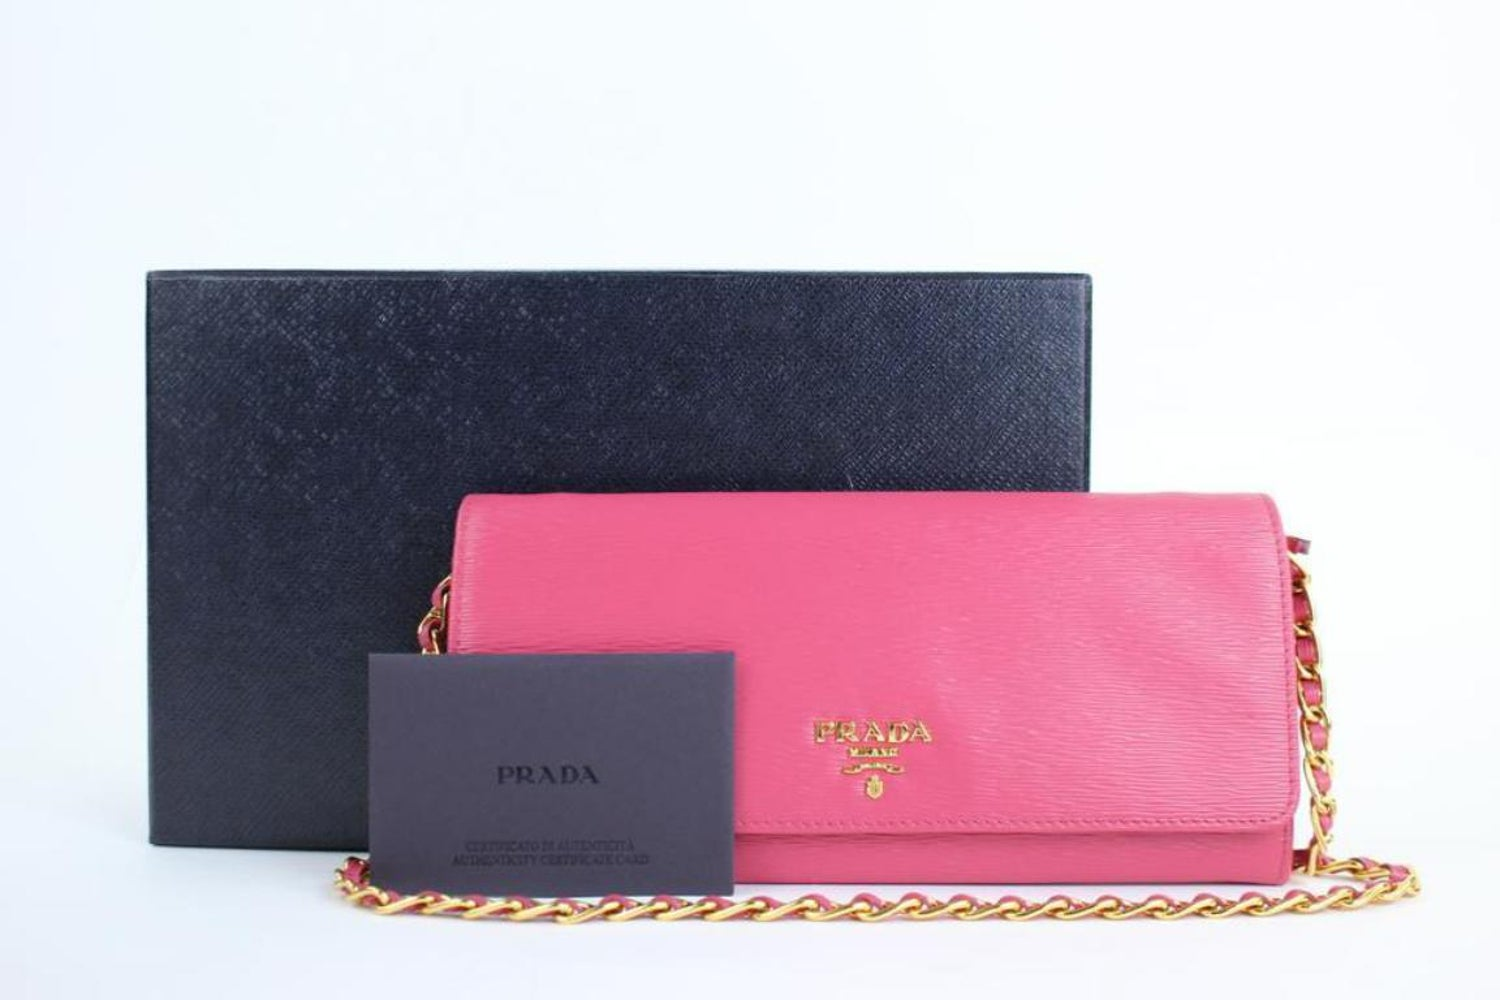 a5a7f7ee63ce Prada Saffiano Metal Wallet On Chain Clutch 4pt916 Pink Leather Cross Body  Bag For Sale at 1stdibs